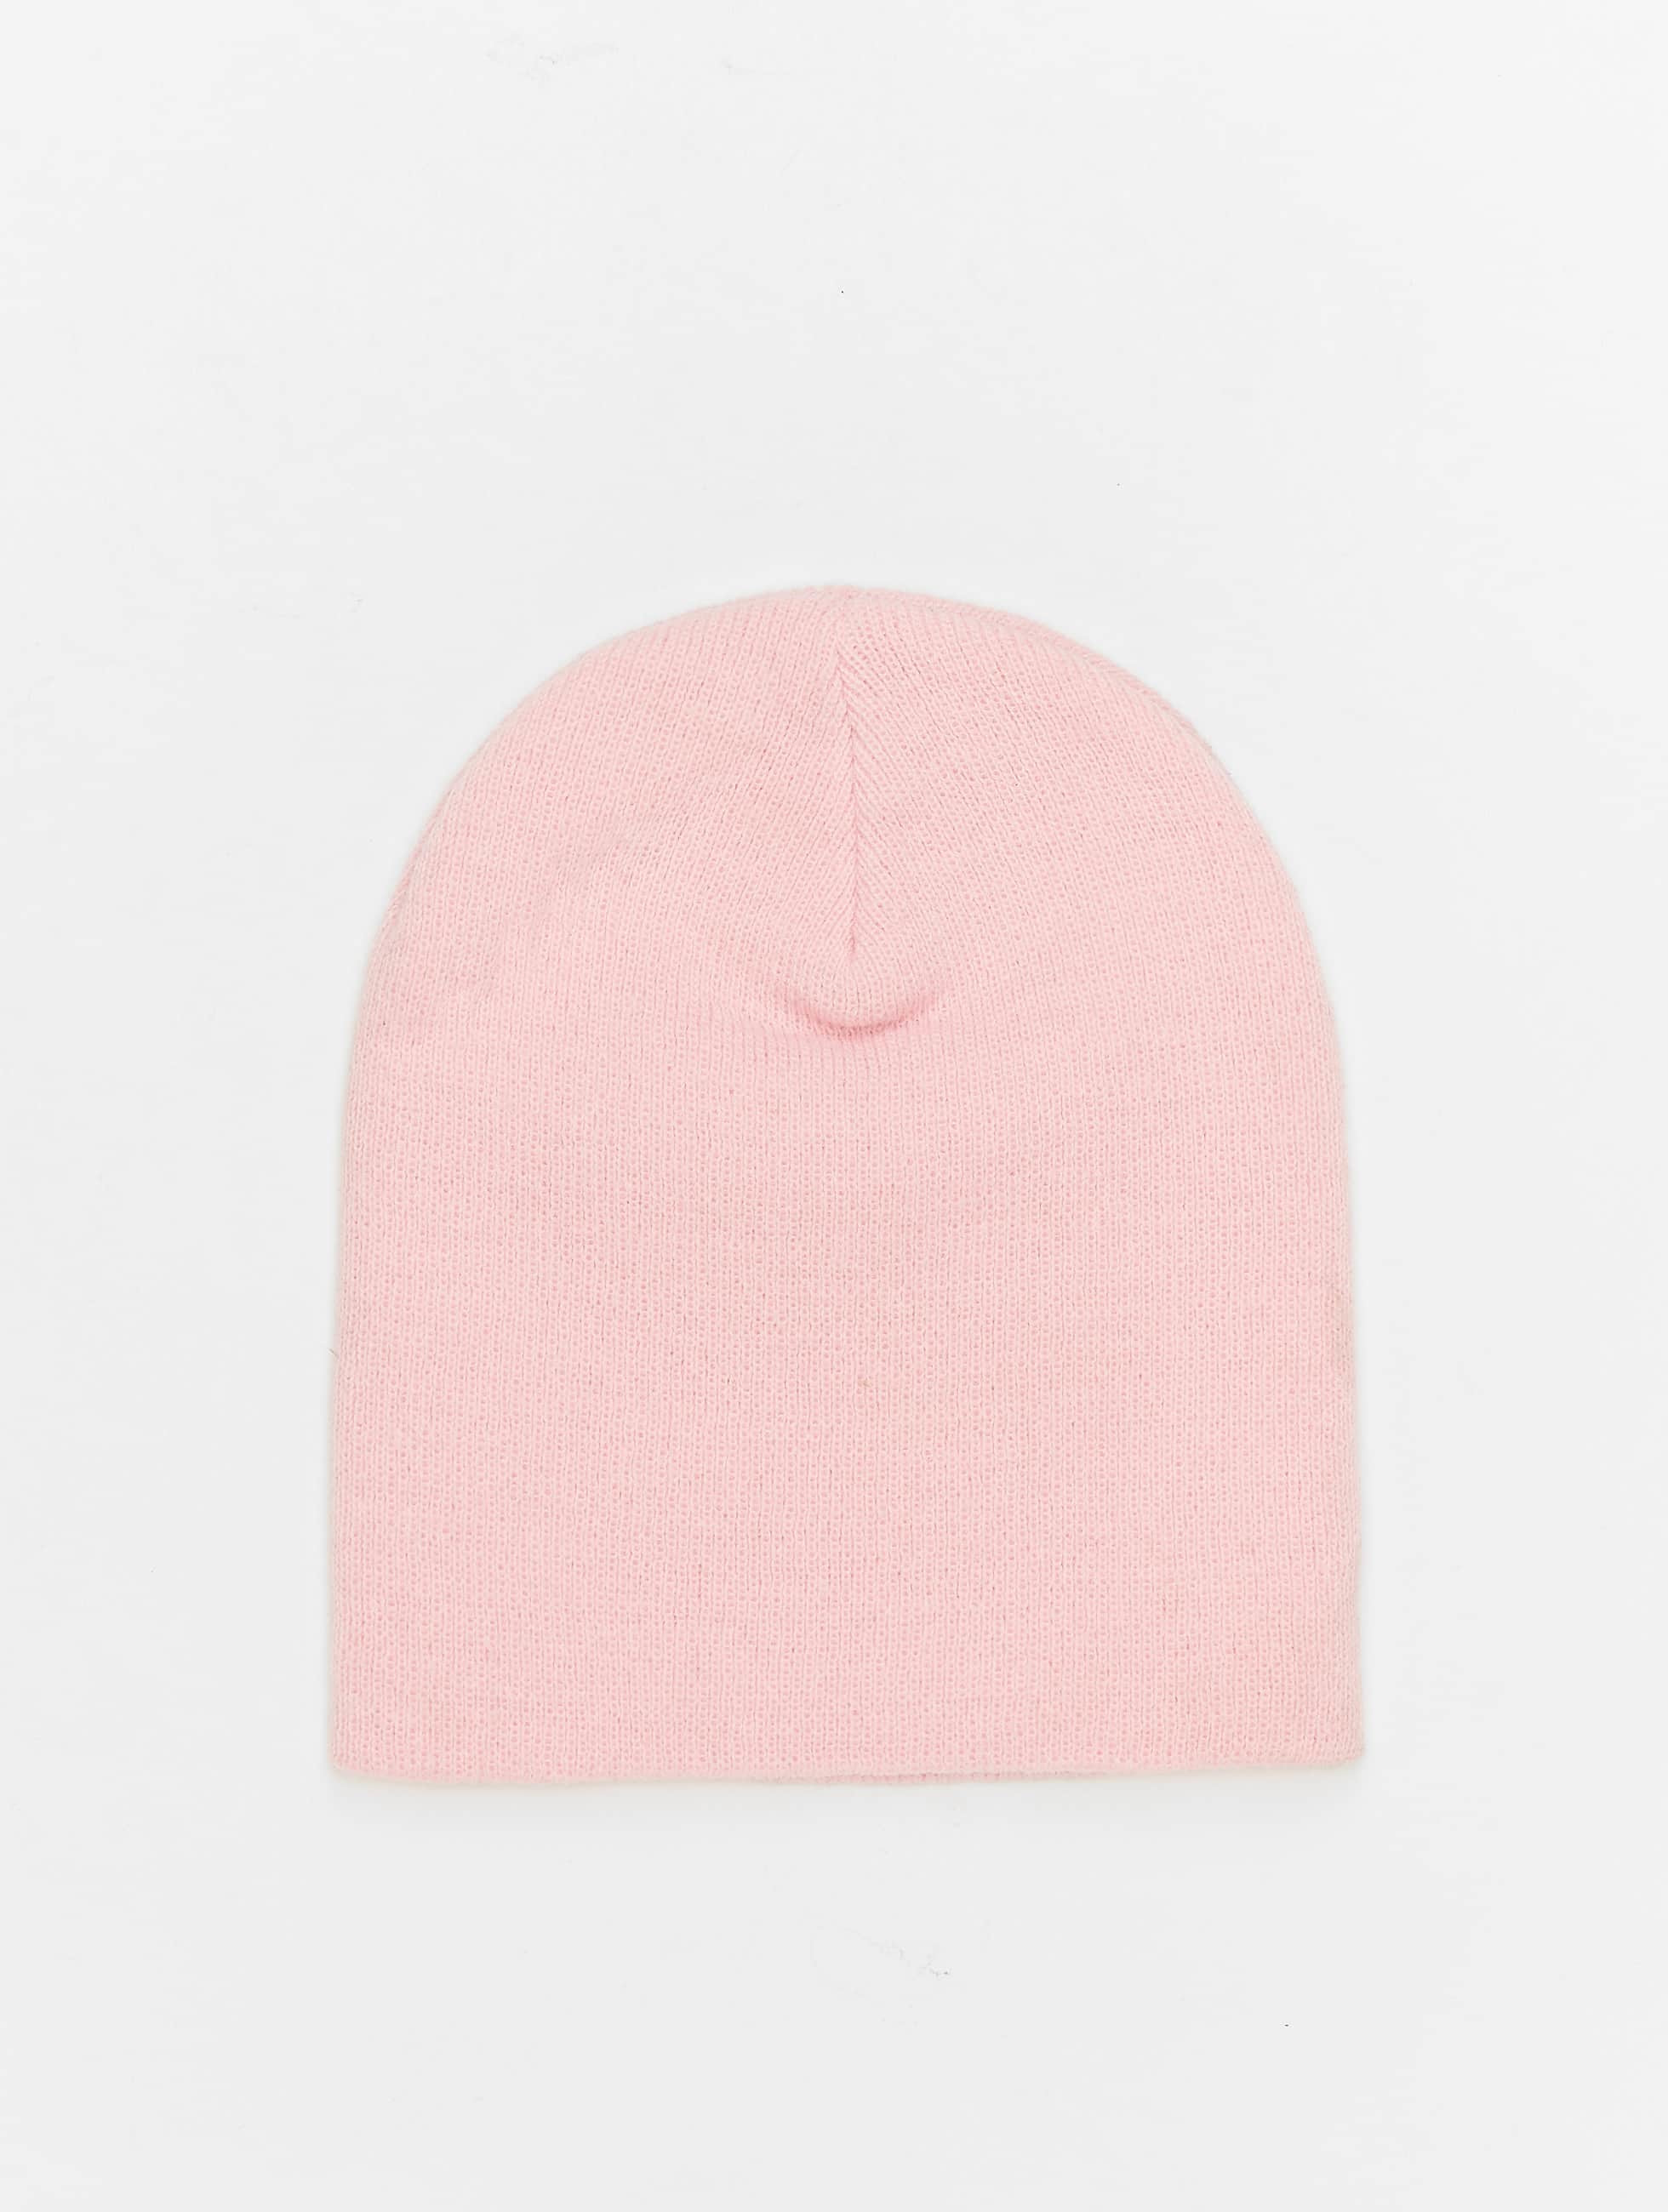 Flexfit Männer,Frauen Beanie Heavyweight in rosa